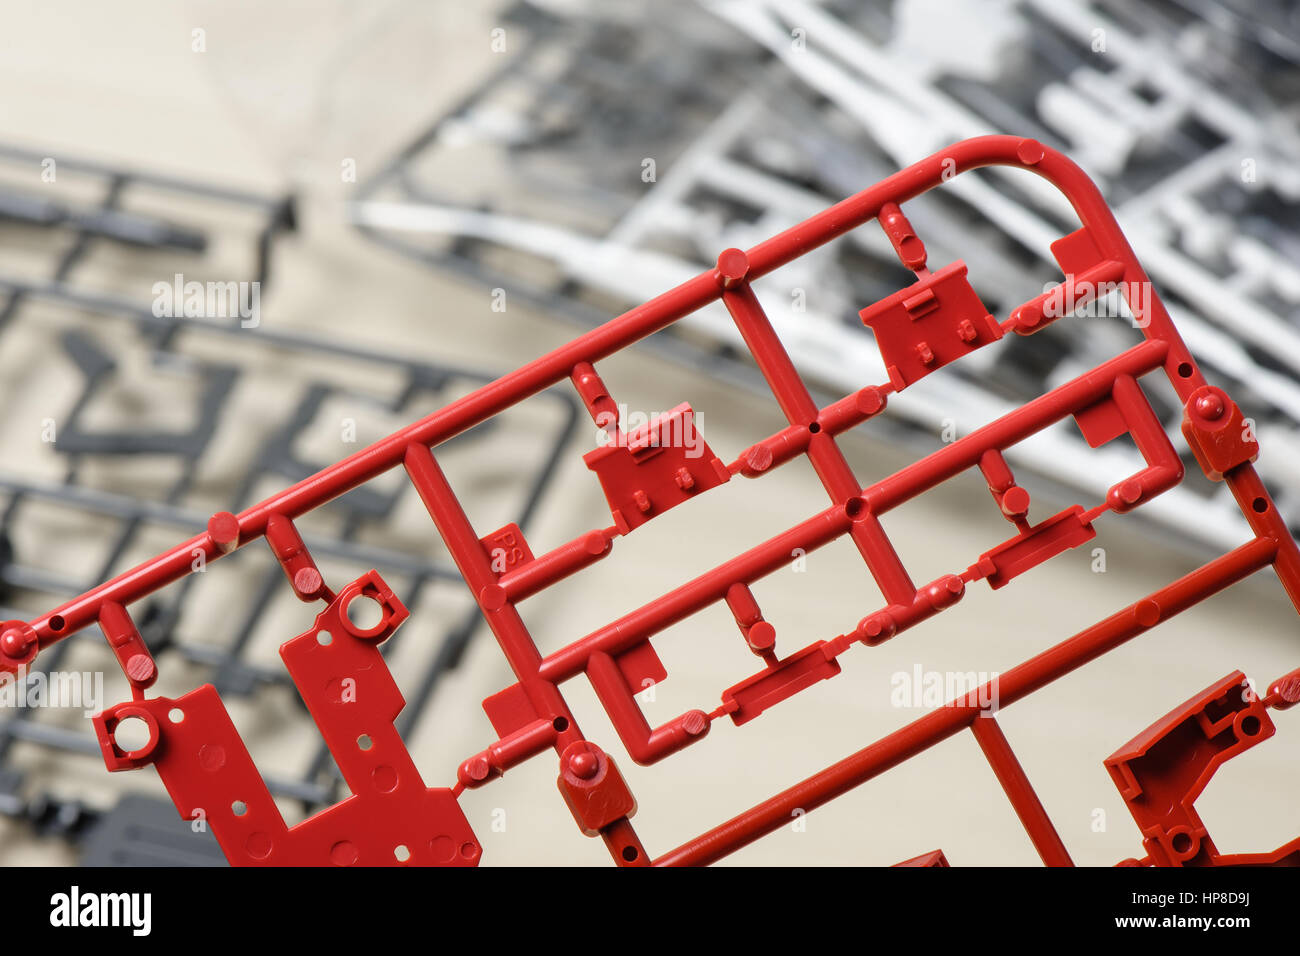 closeup sprue or injection molding of toy - Stock Image